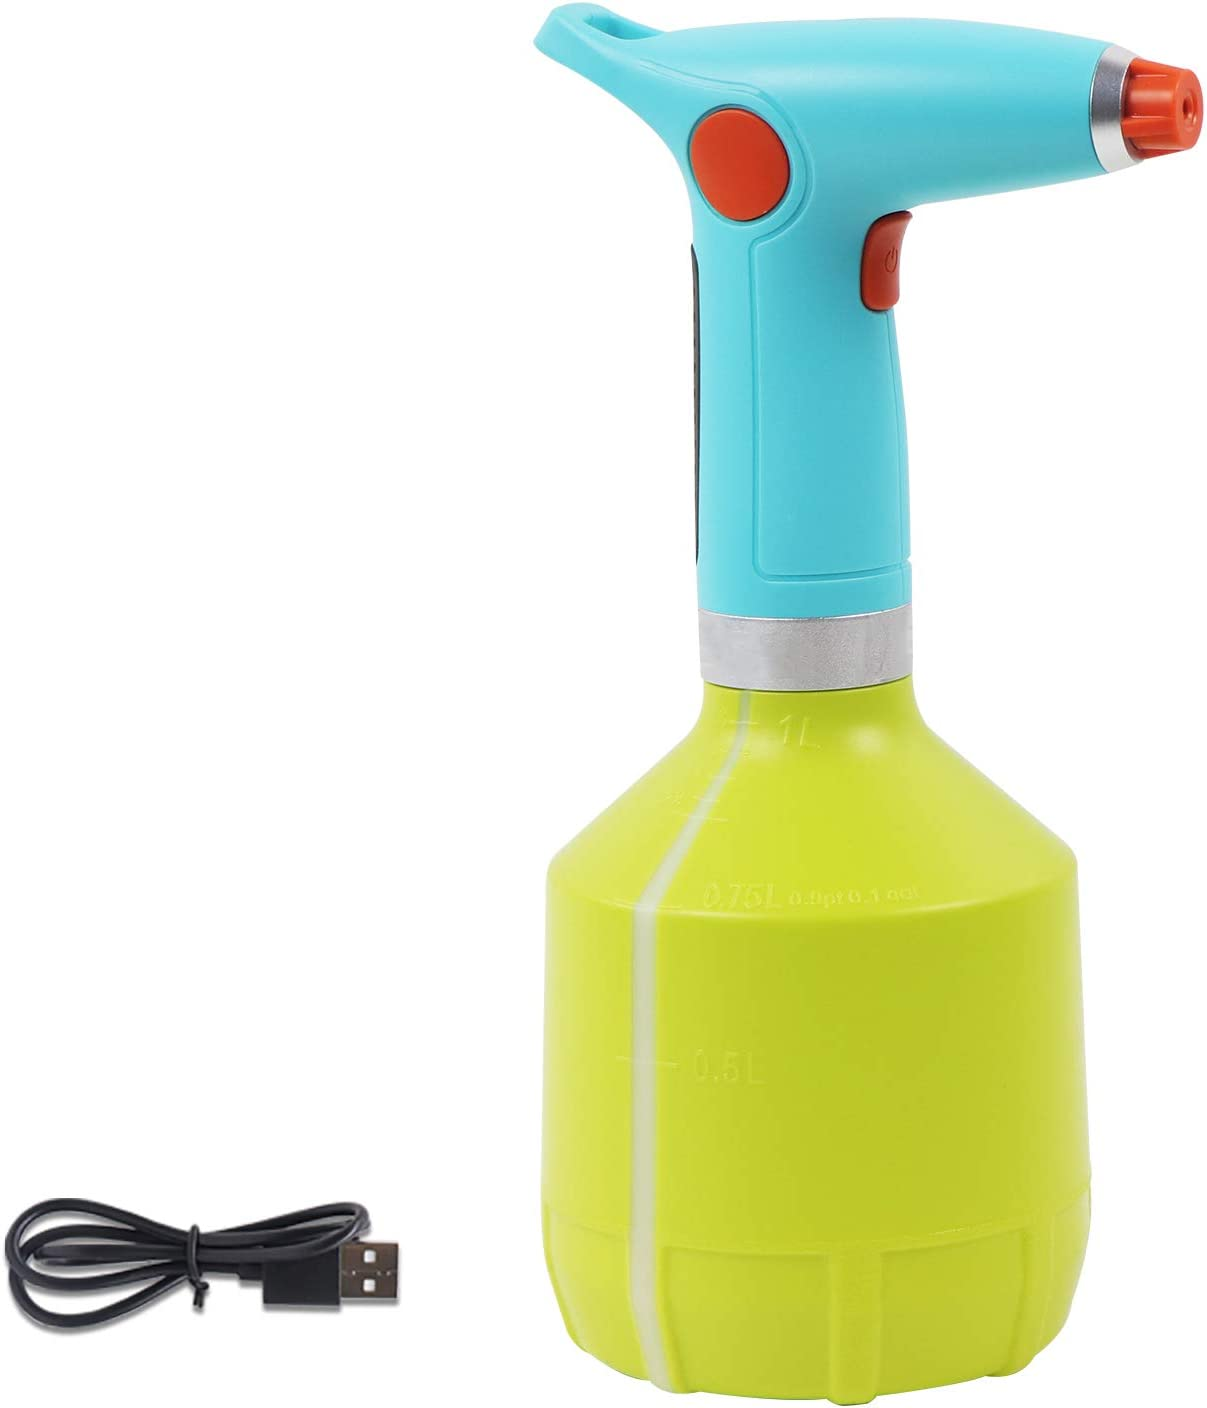 scimaker Electric Plant Mister Sprayer Bottle, Watering Can with Adjustable Nozzle, 34 Ounce Handheld Spritzer for Garden, House Flower, Cleaning (Green)